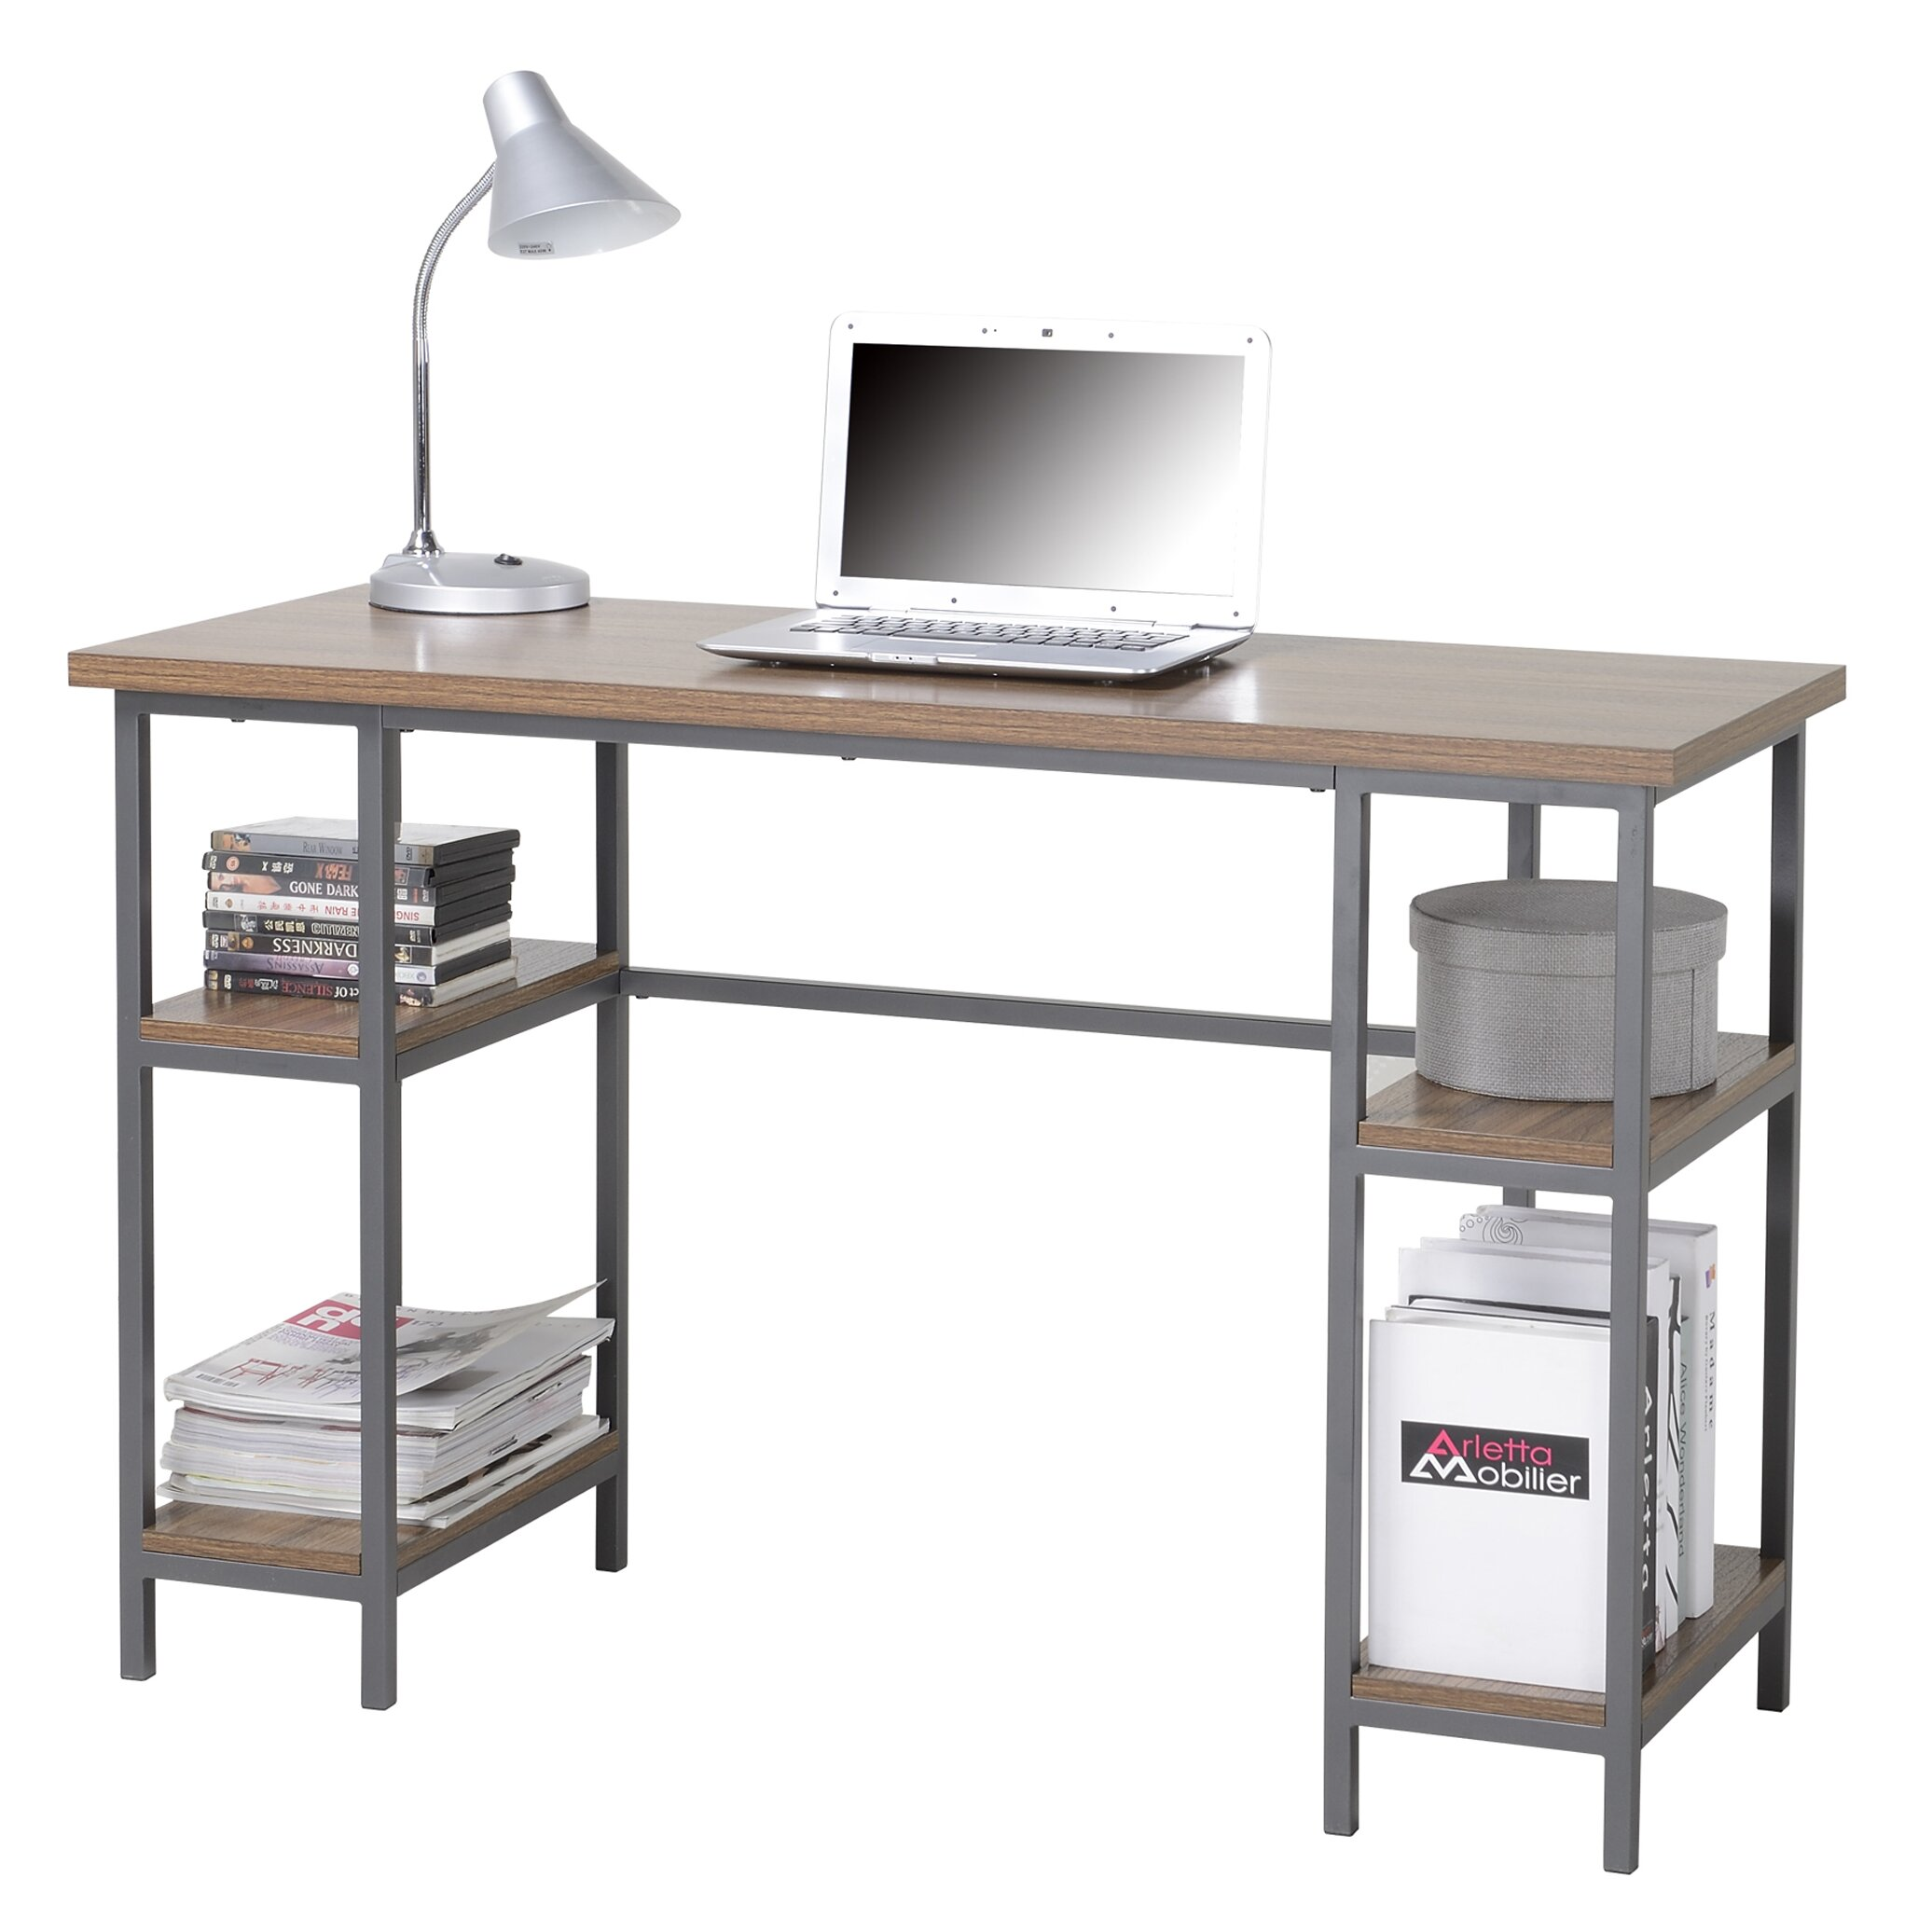 homestar computer desk with 4 shelves reviews wayfair. Black Bedroom Furniture Sets. Home Design Ideas